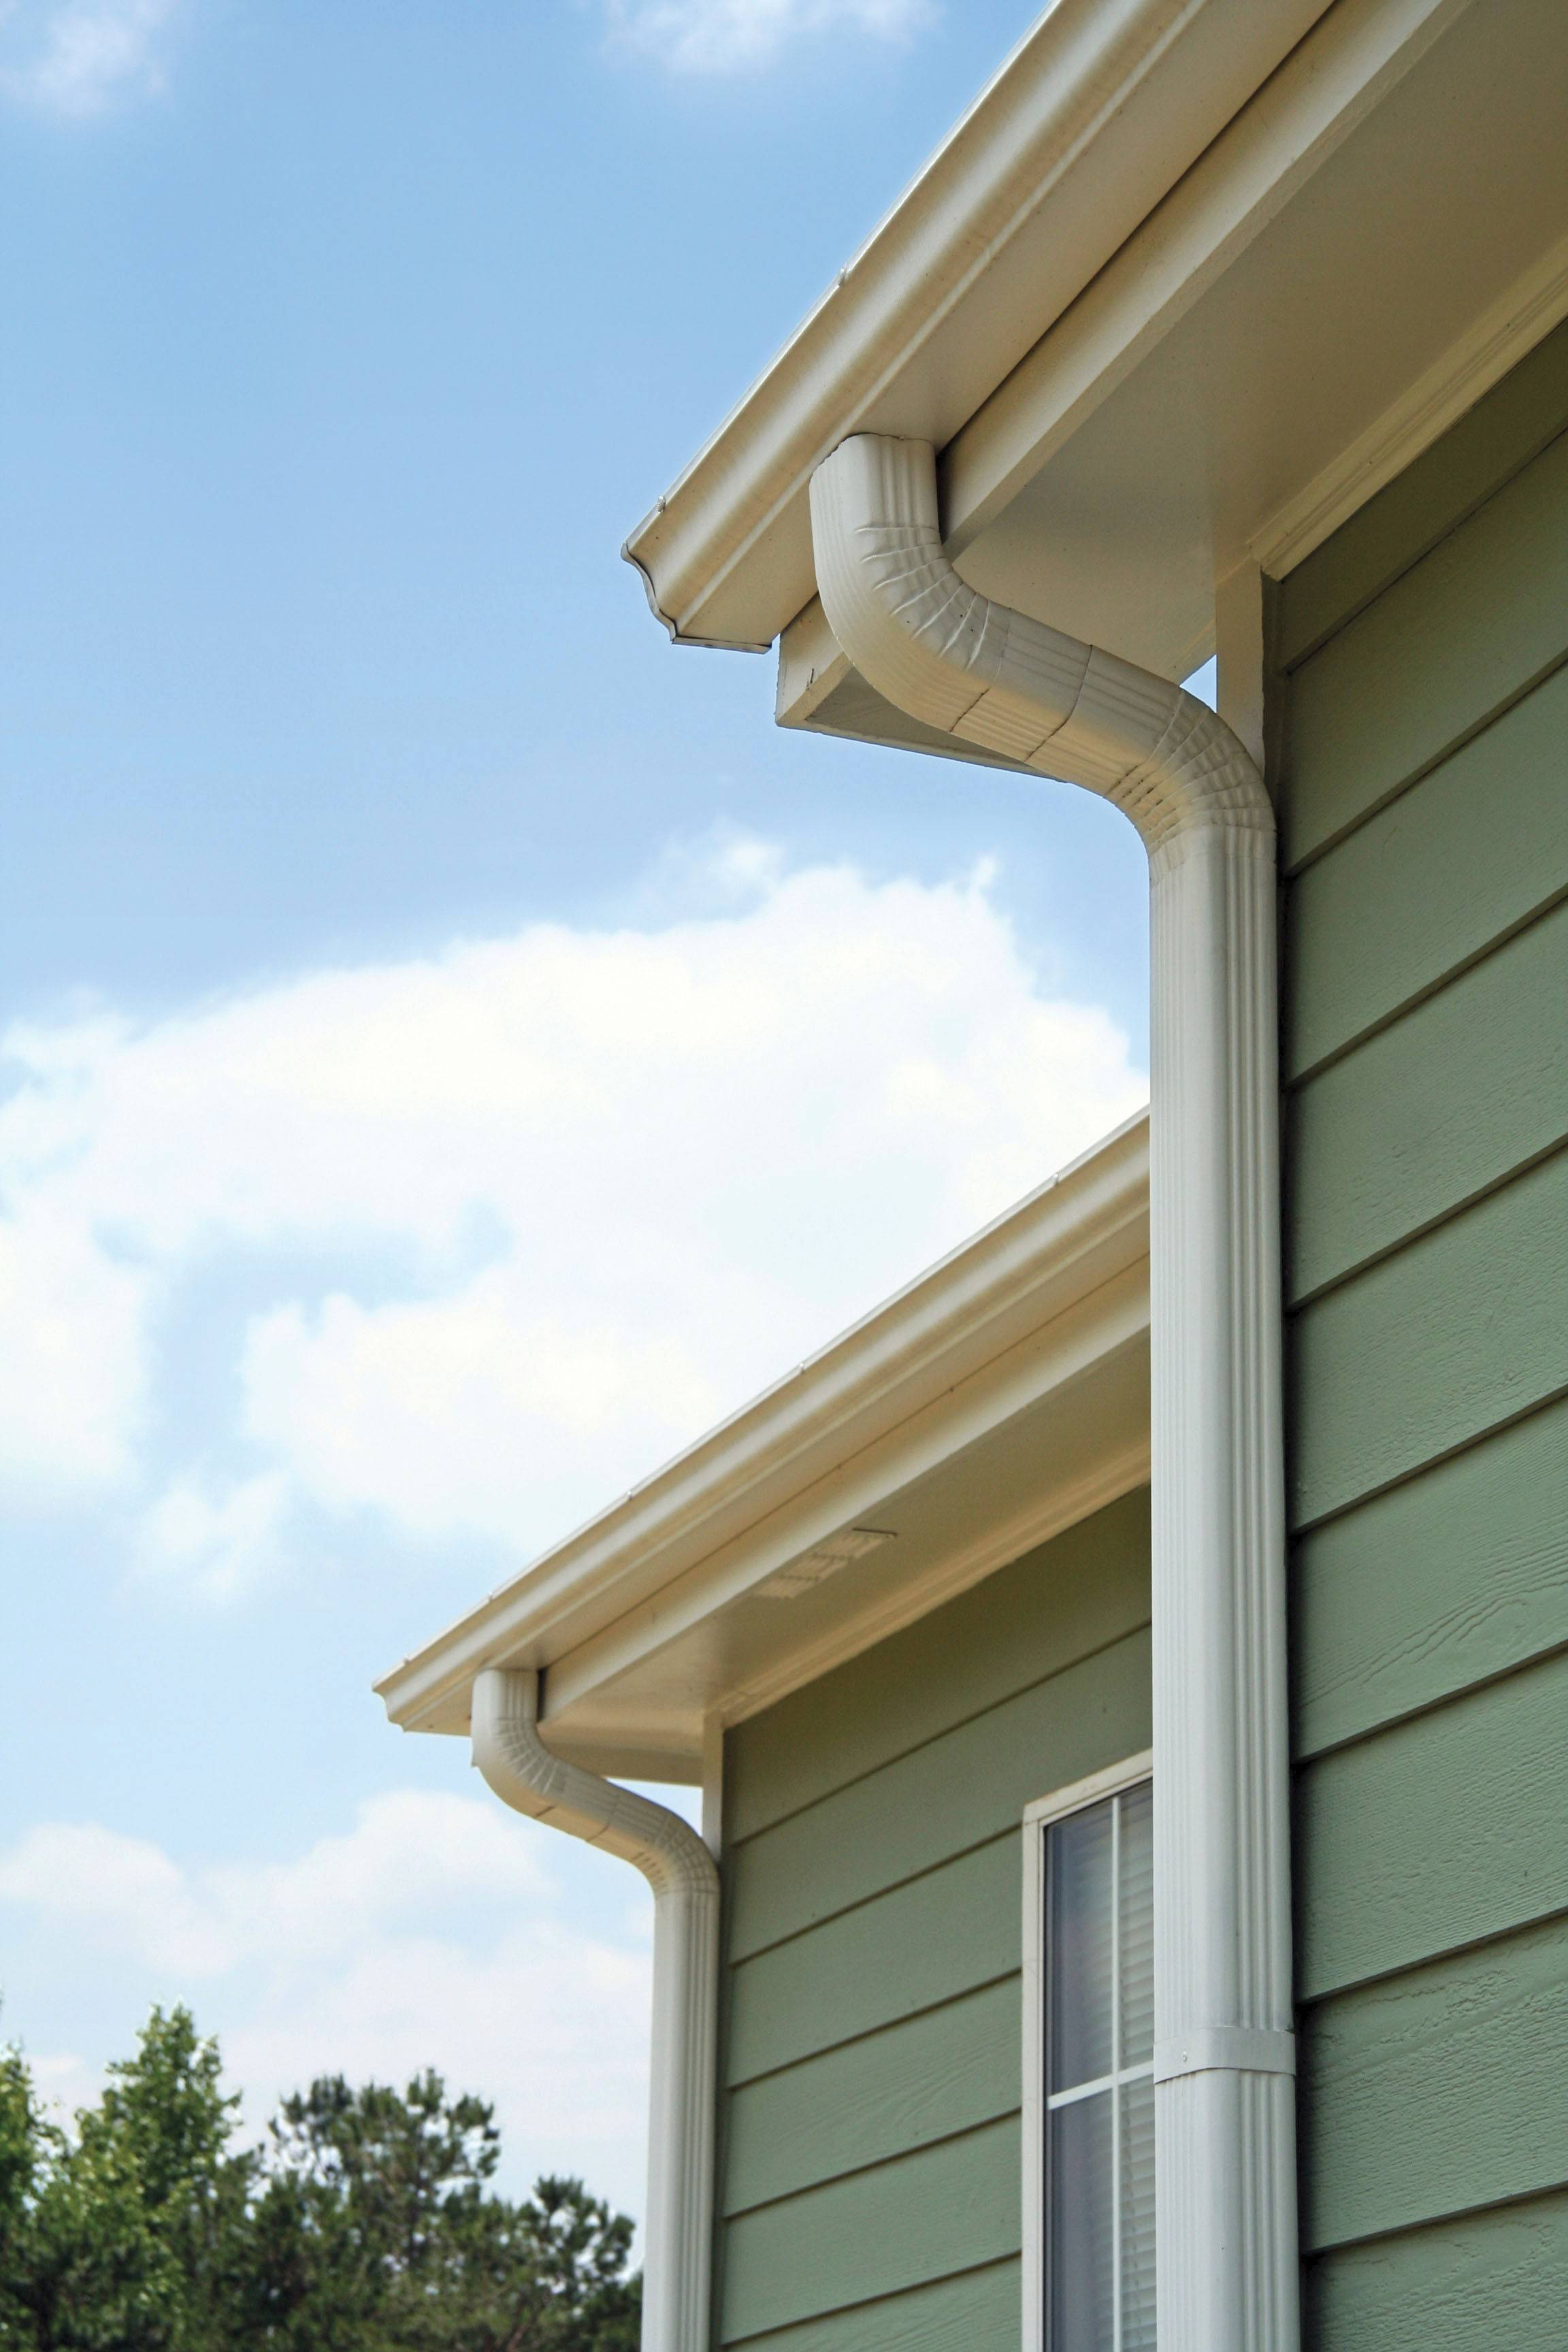 Clogged gutters aren't just an aesthetic problem. If water puddles near the home, it could lead to costly water damage.